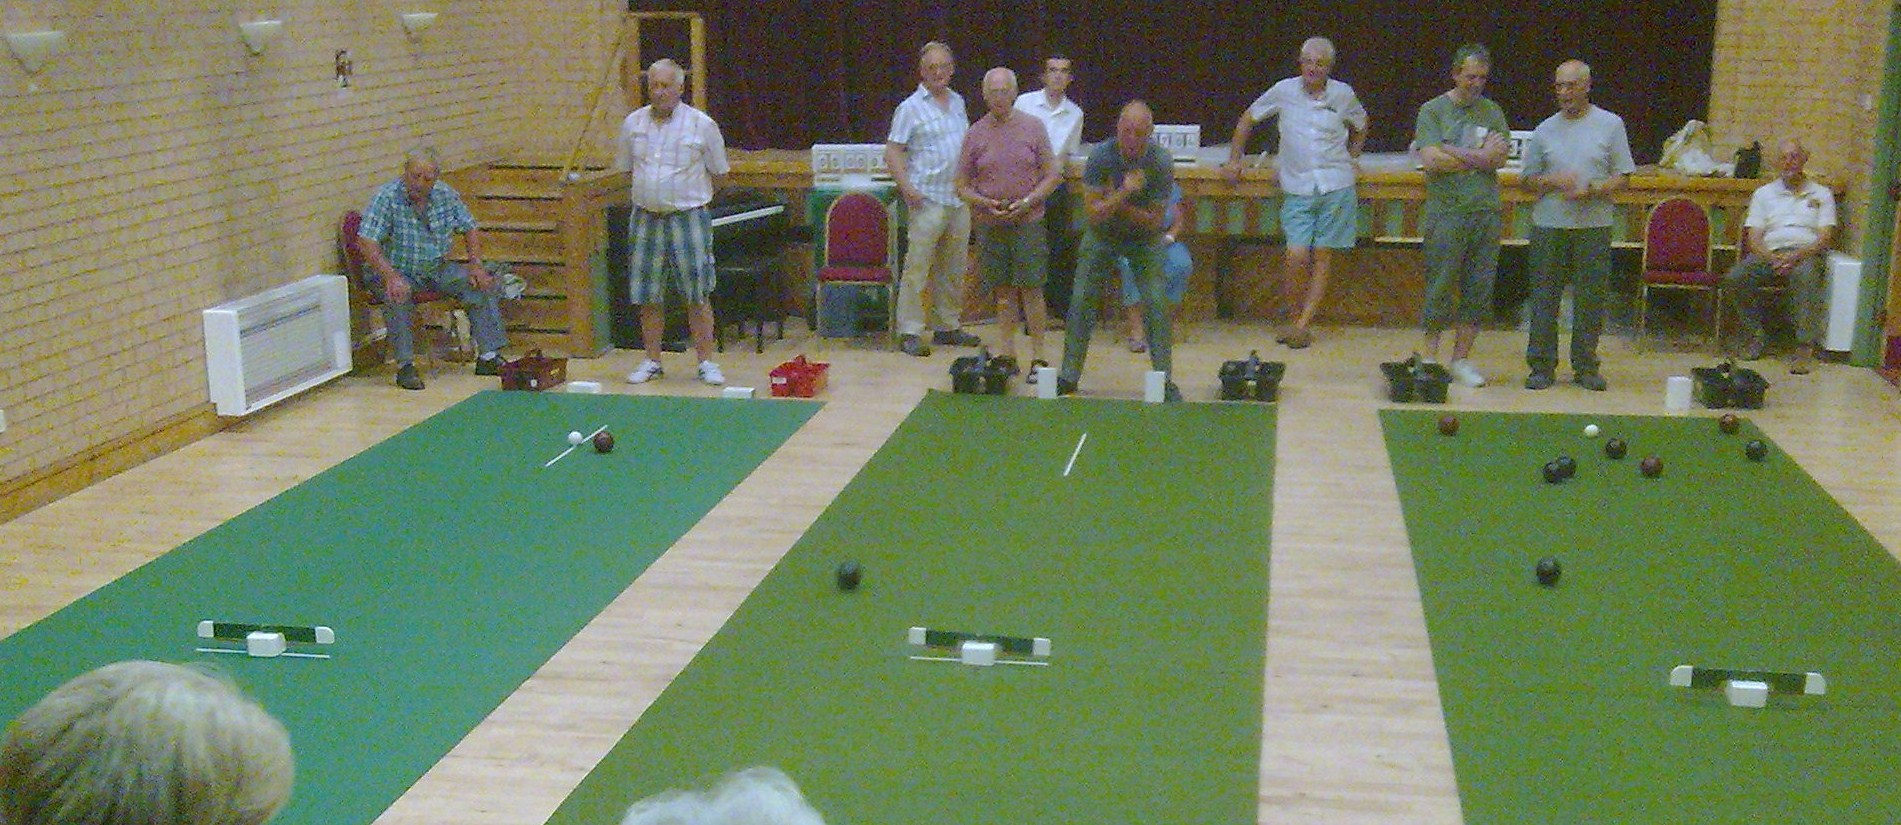 Indoor Bowls Club Meets At Chester Le Street The Northern Echo